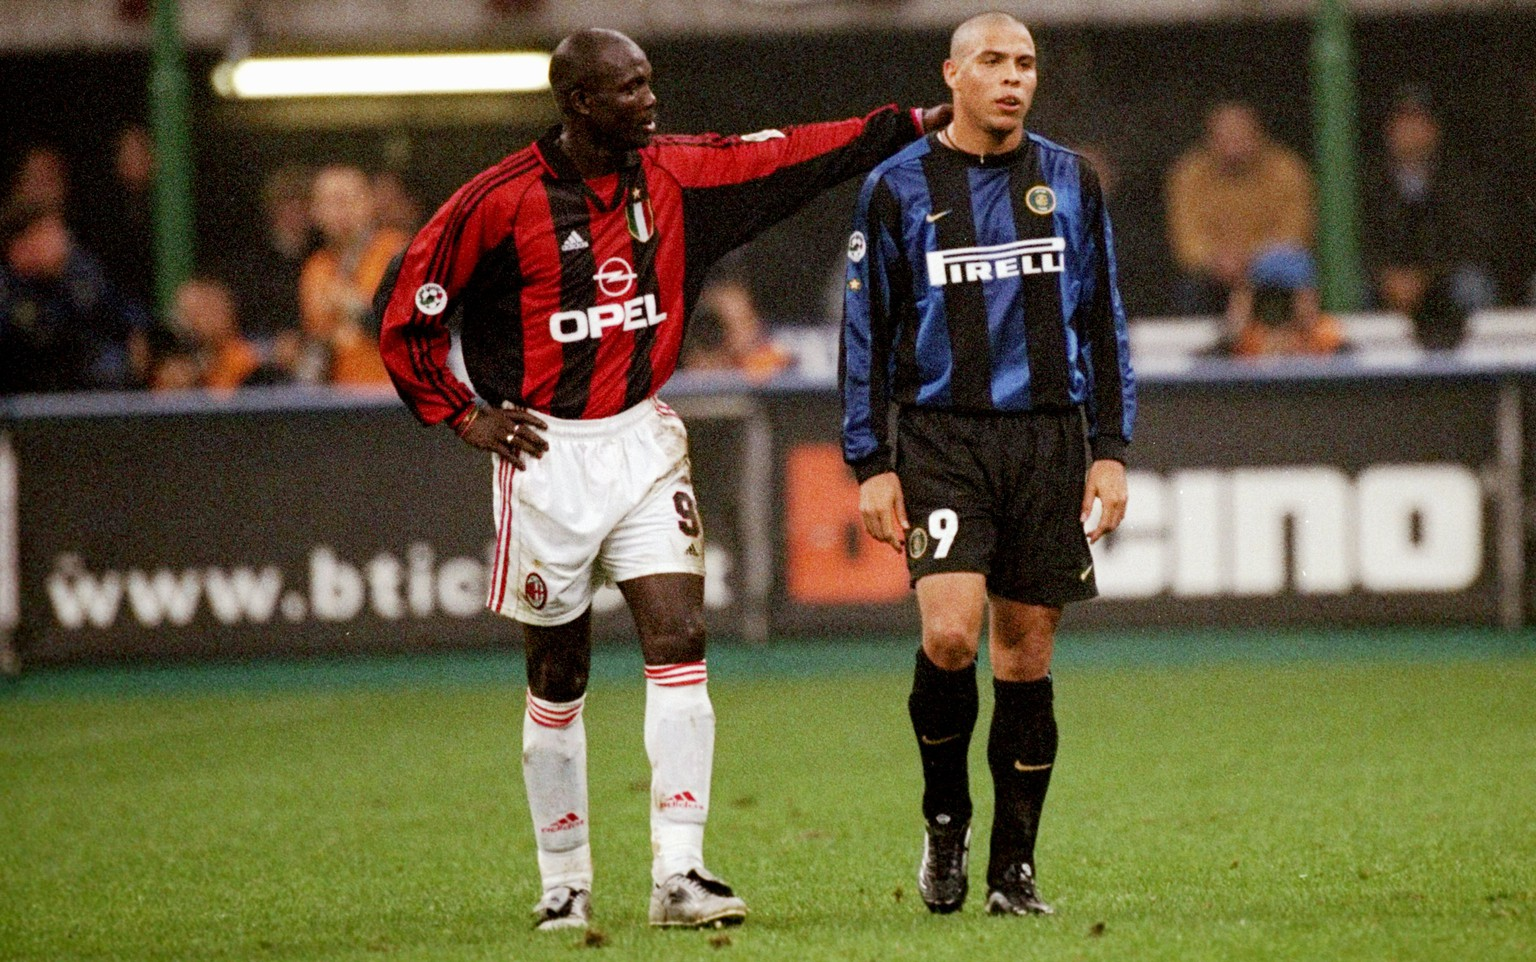 23 Oct 1999:  George Weah of AC Milan consoles Ronaldo of Inter Milan after his sending off during the Serie A match at the San Siro in Milan, Italy.  \ Mandatory Credit: Claudio Villa /Allsport